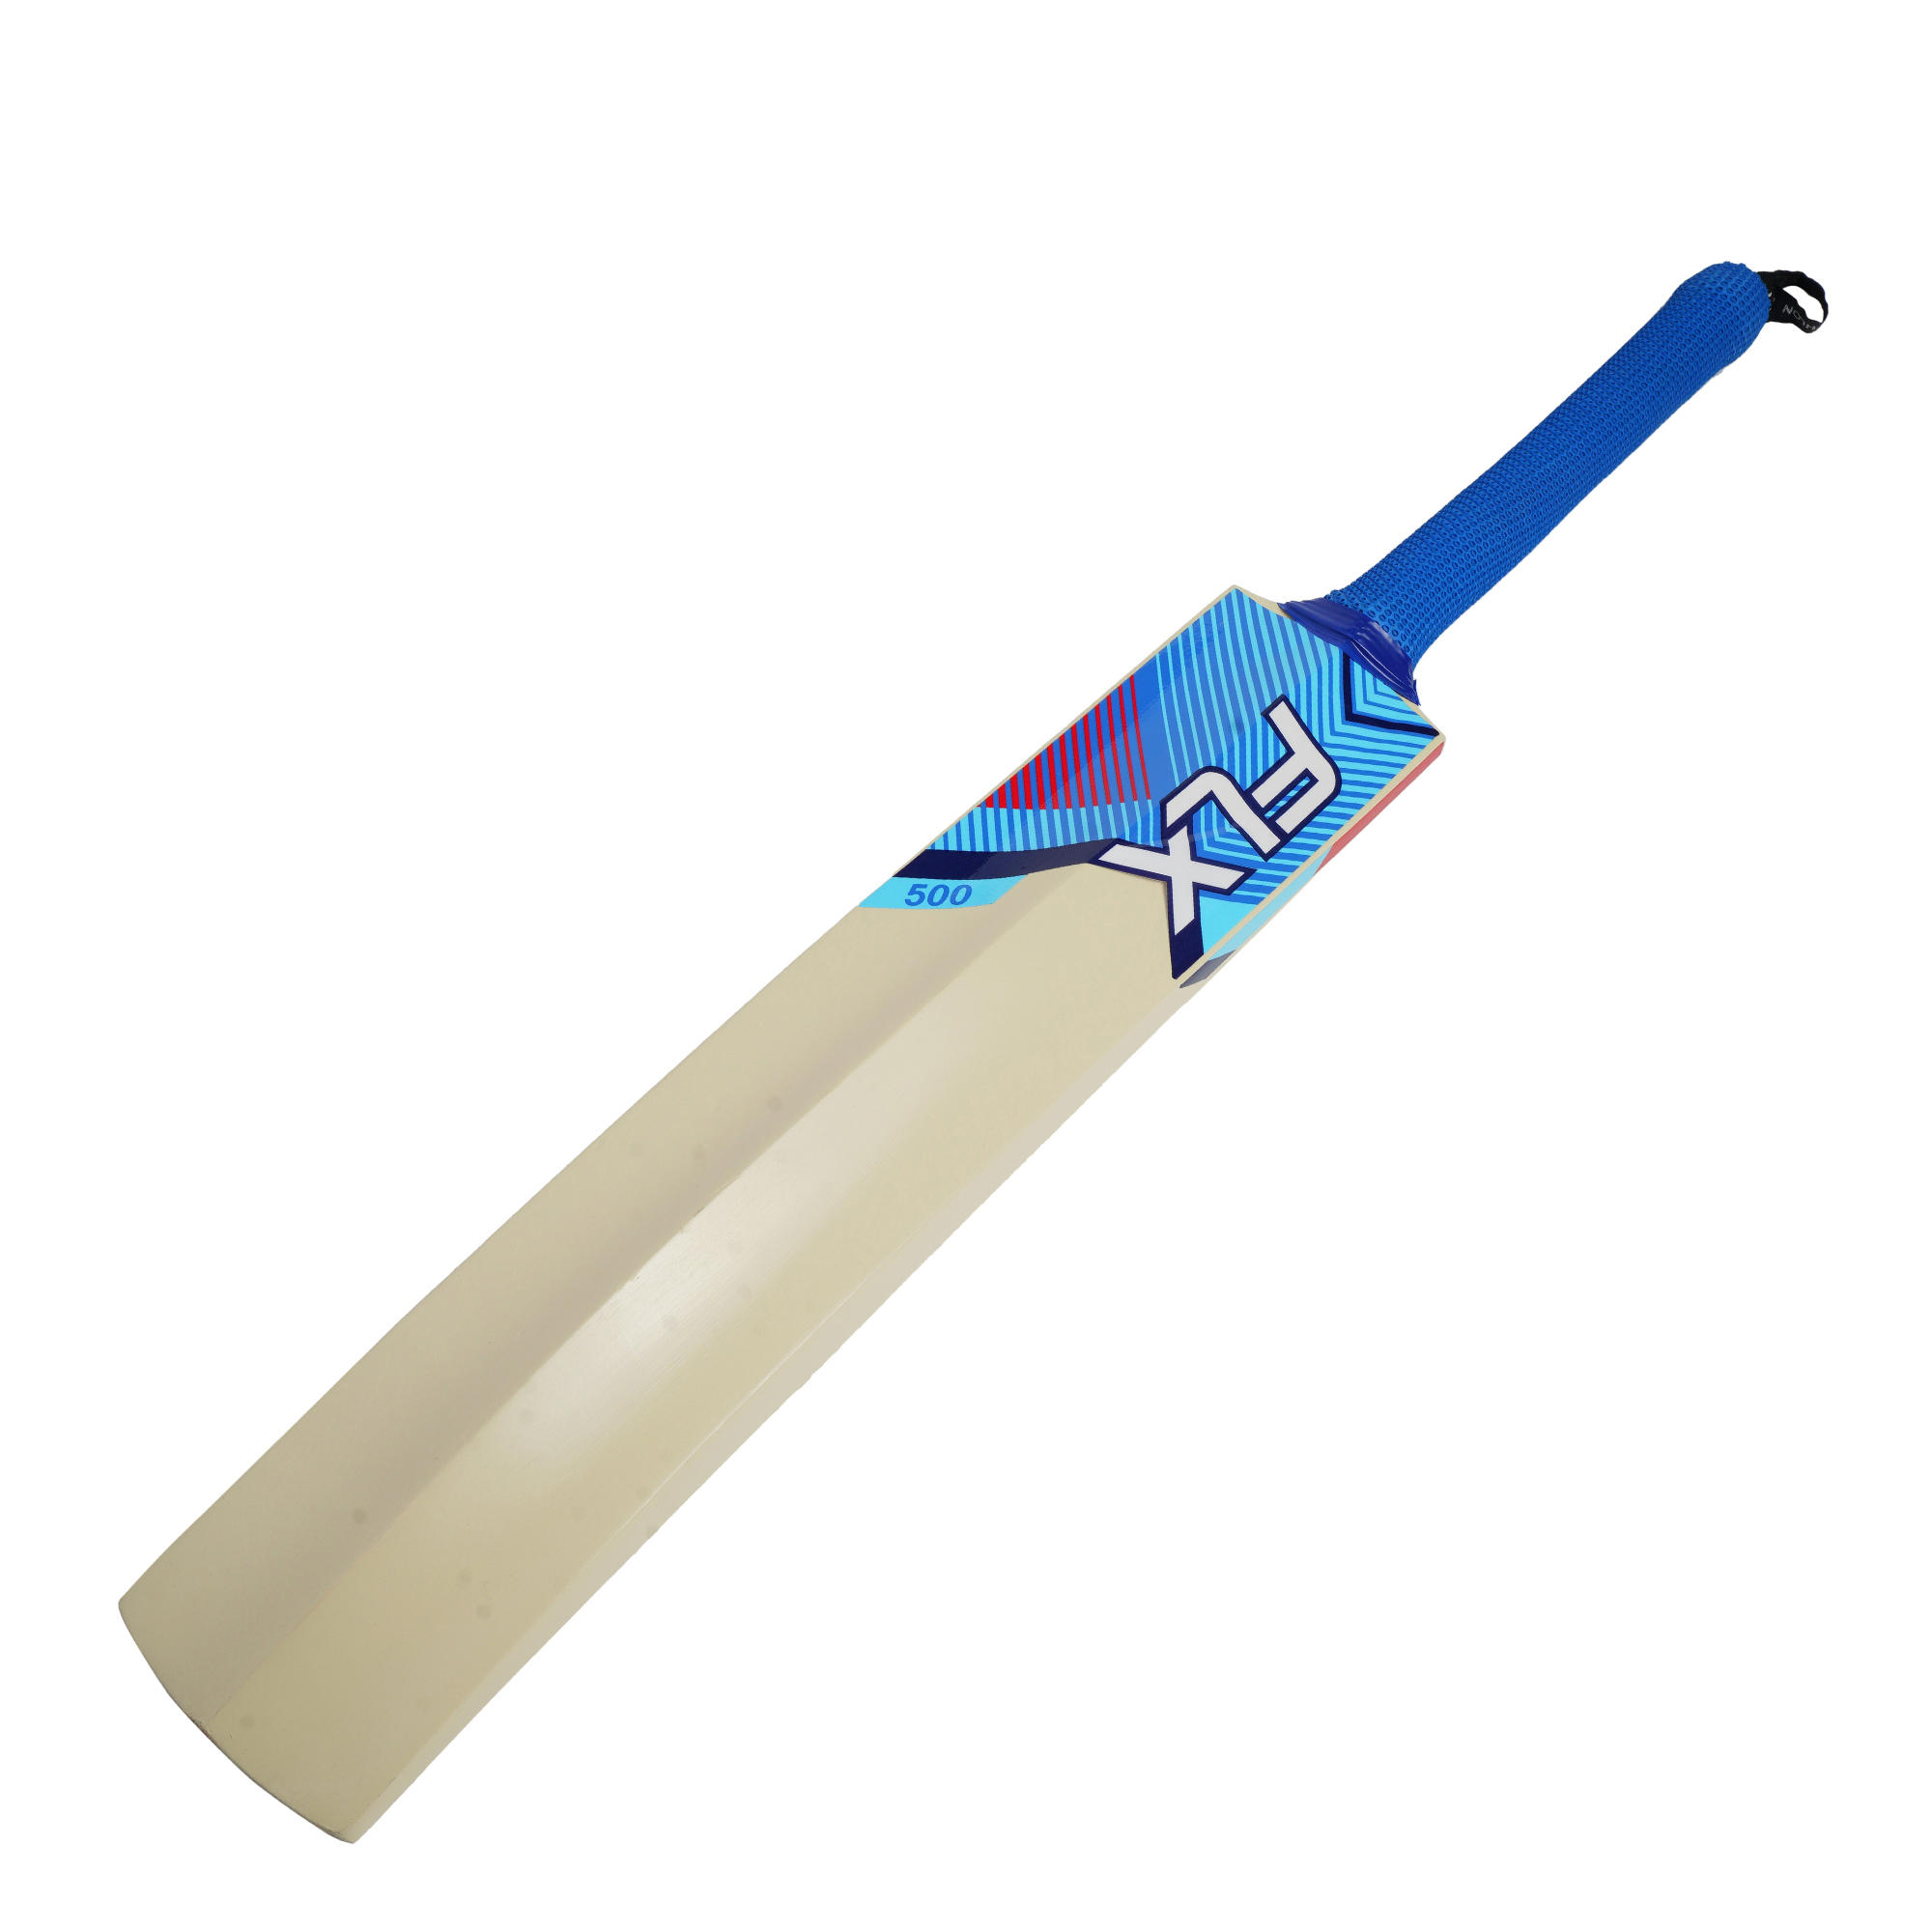 Flx T500 Cricket Bat For Soft Tennis Ball Blue Youth Adults